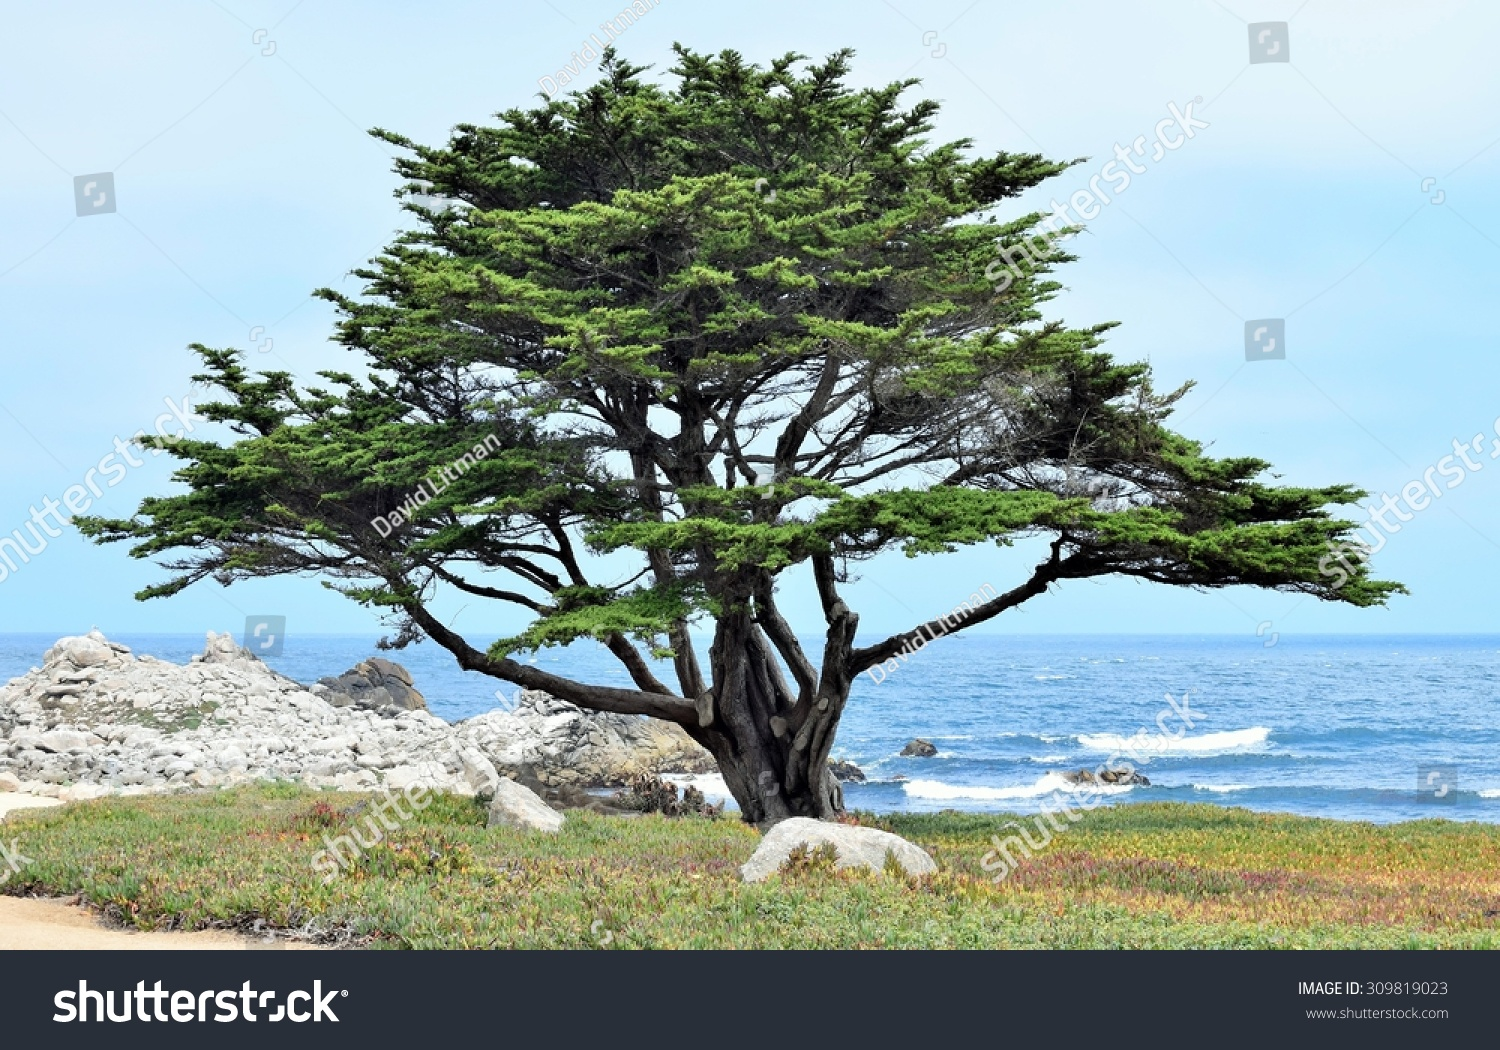 A lone Monterey Cypress tree (Cupressus macrocarpa) stands along the beach of the  rocky Pacific Coast in central California (Pacific Grove), USA